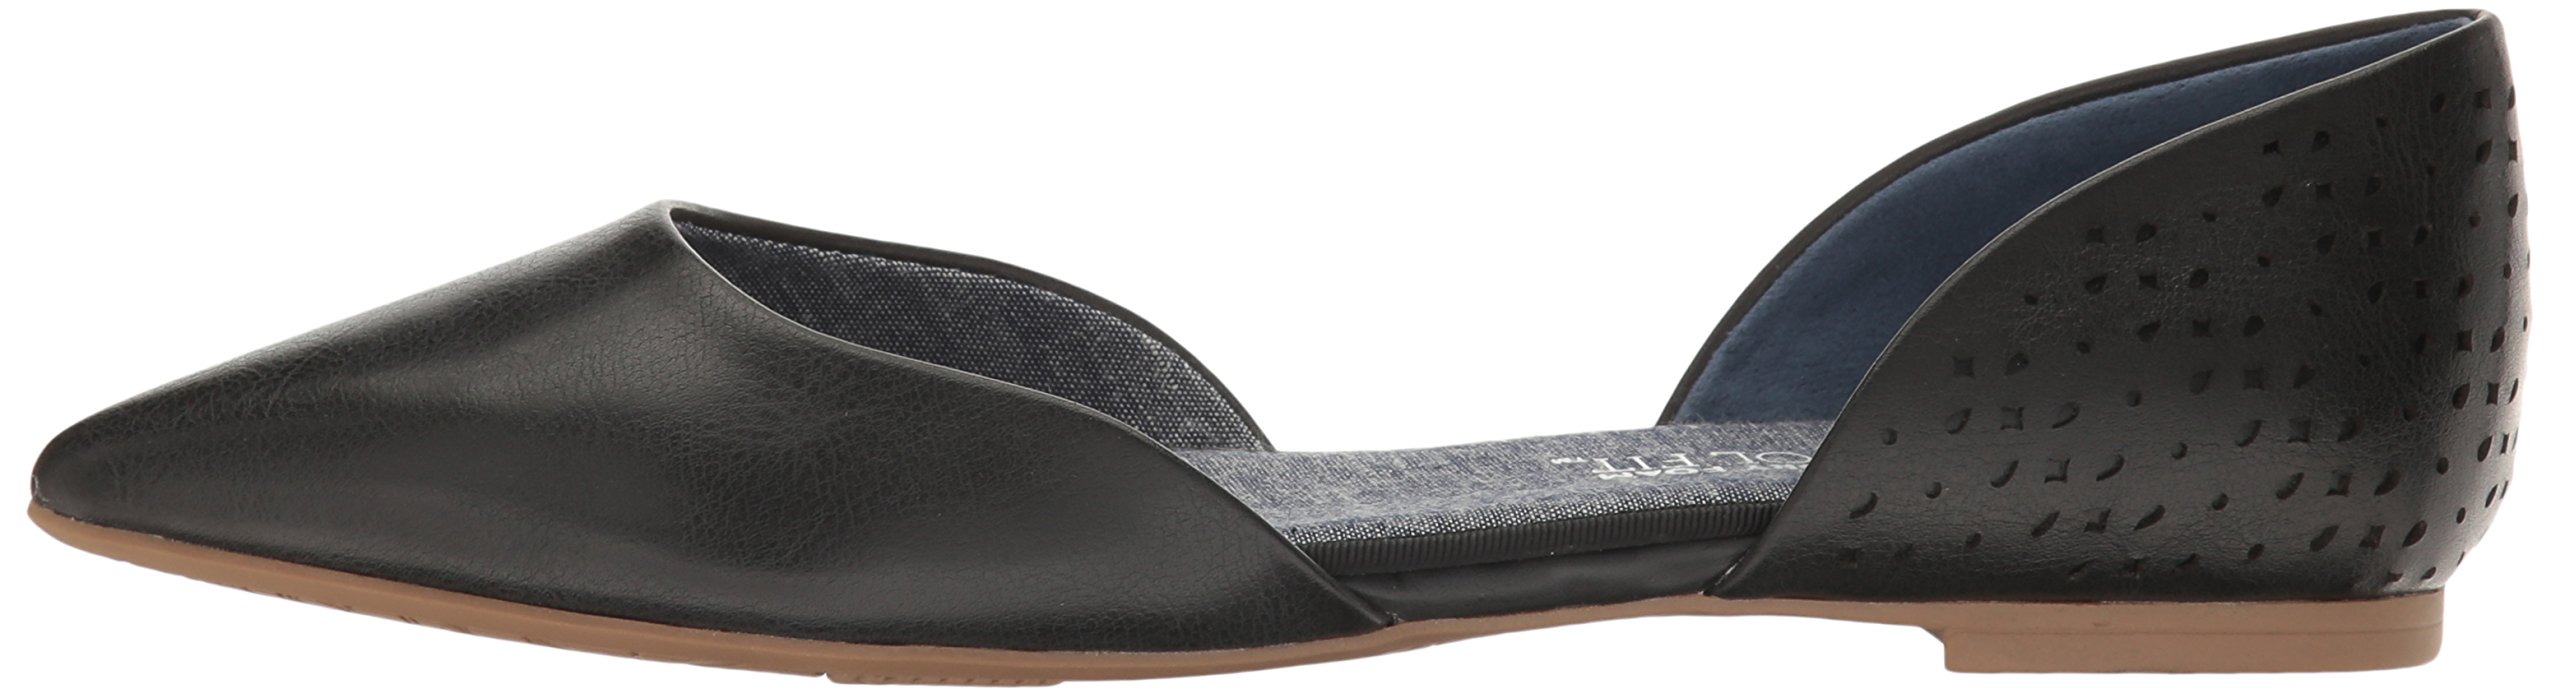 Dr. Scholl's Women's Svetlana Pointed Toe Flat, Black Perforated, 9.5 M US by Dr. Scholl's (Image #5)